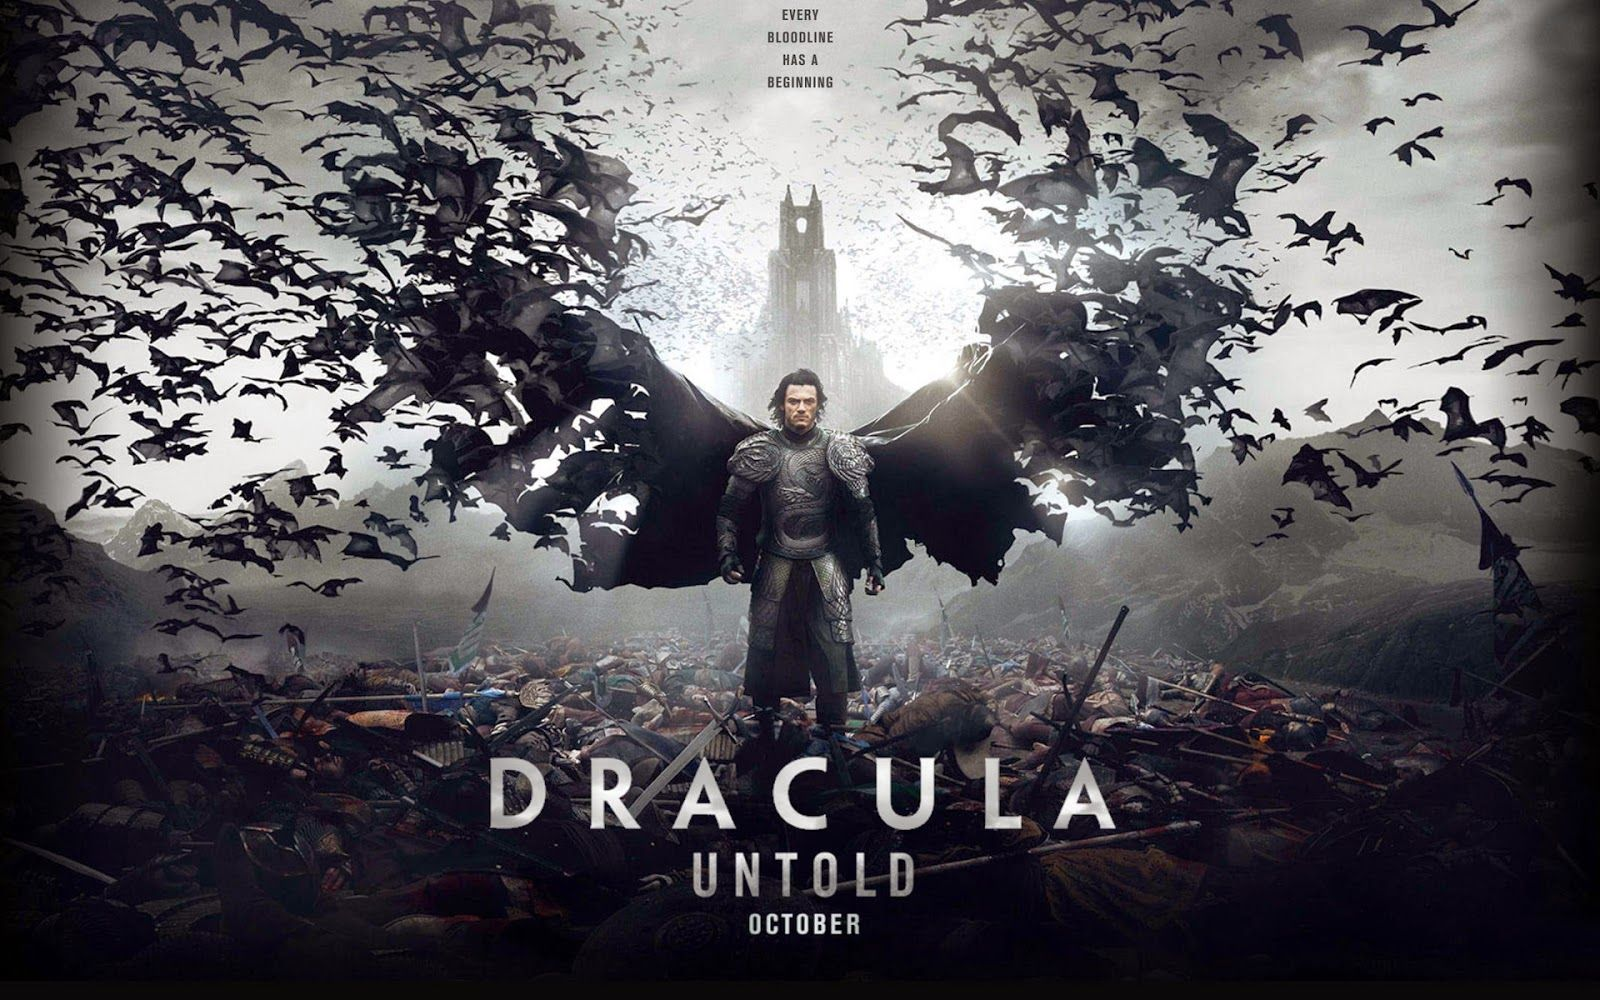 Dracula Untold Hollywood Movie Hd Wallpapers Imagesadda In Telugu Dracula Untold Dracula Trailer Song